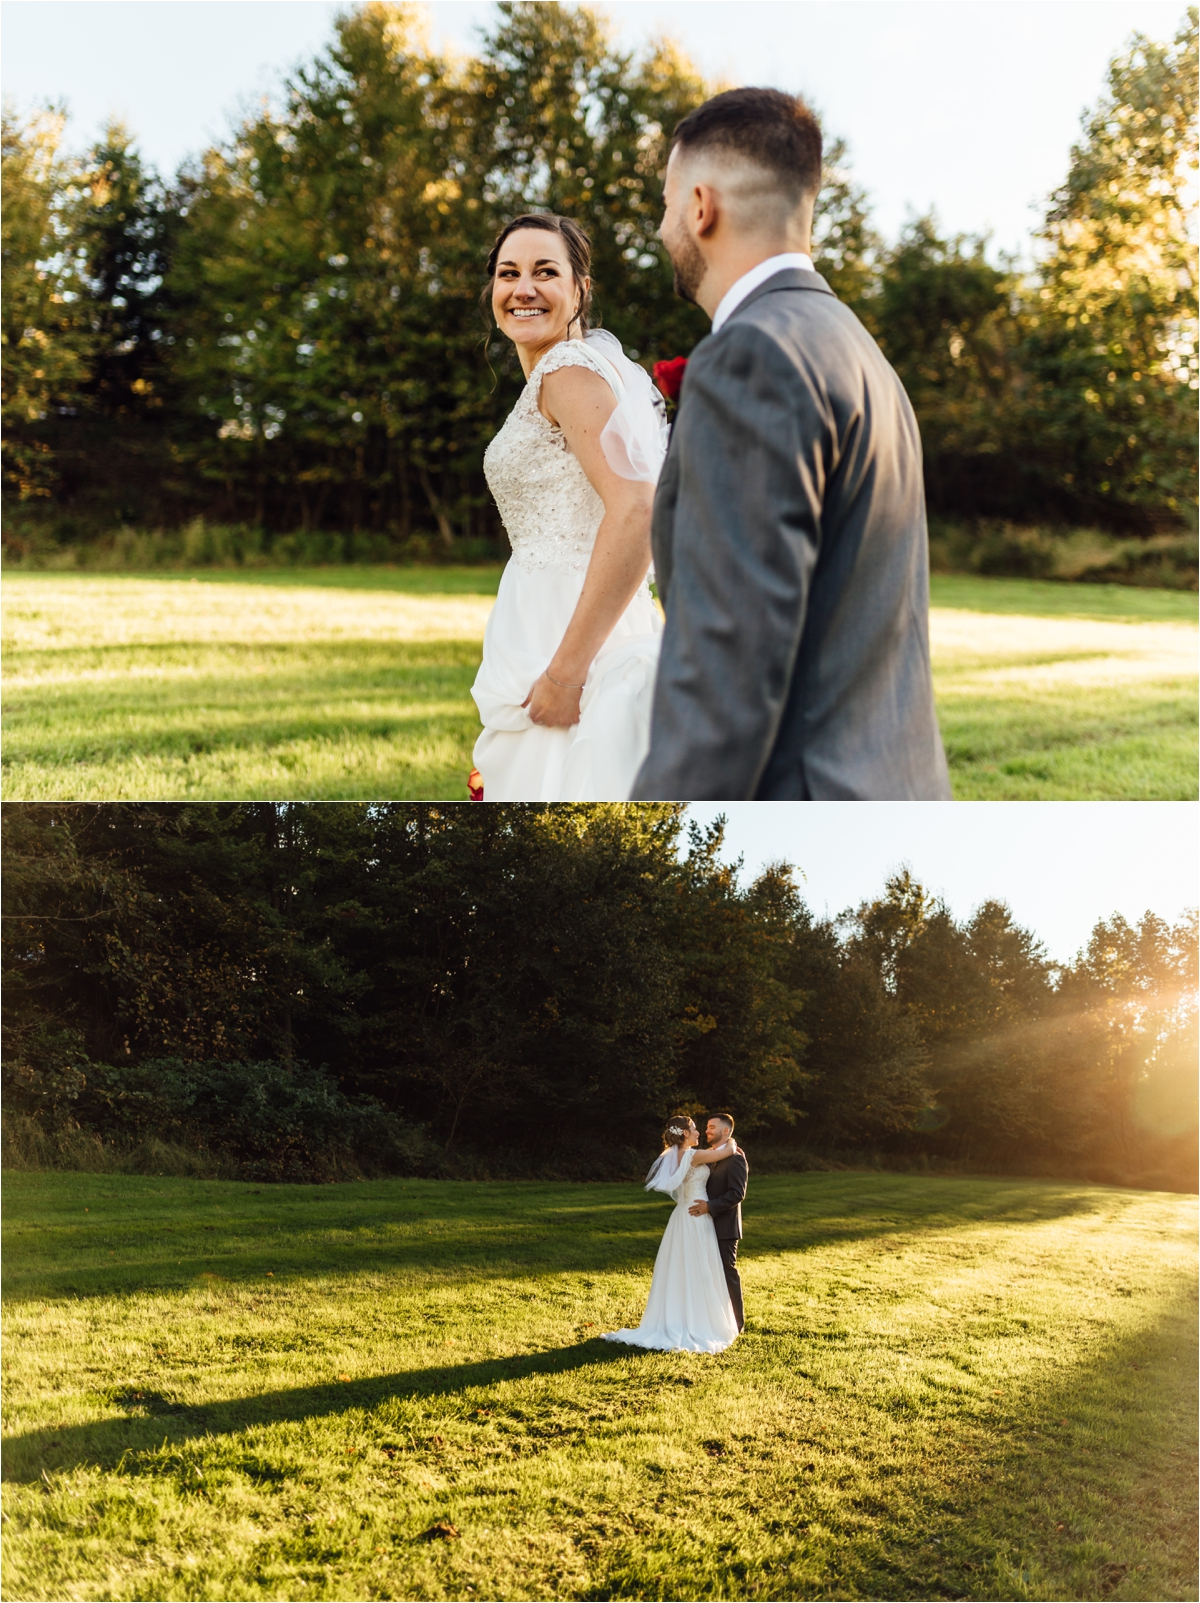 Sarah_&_Doug_Stroudsberg_Wedding_the_photo_farm_0062.jpg